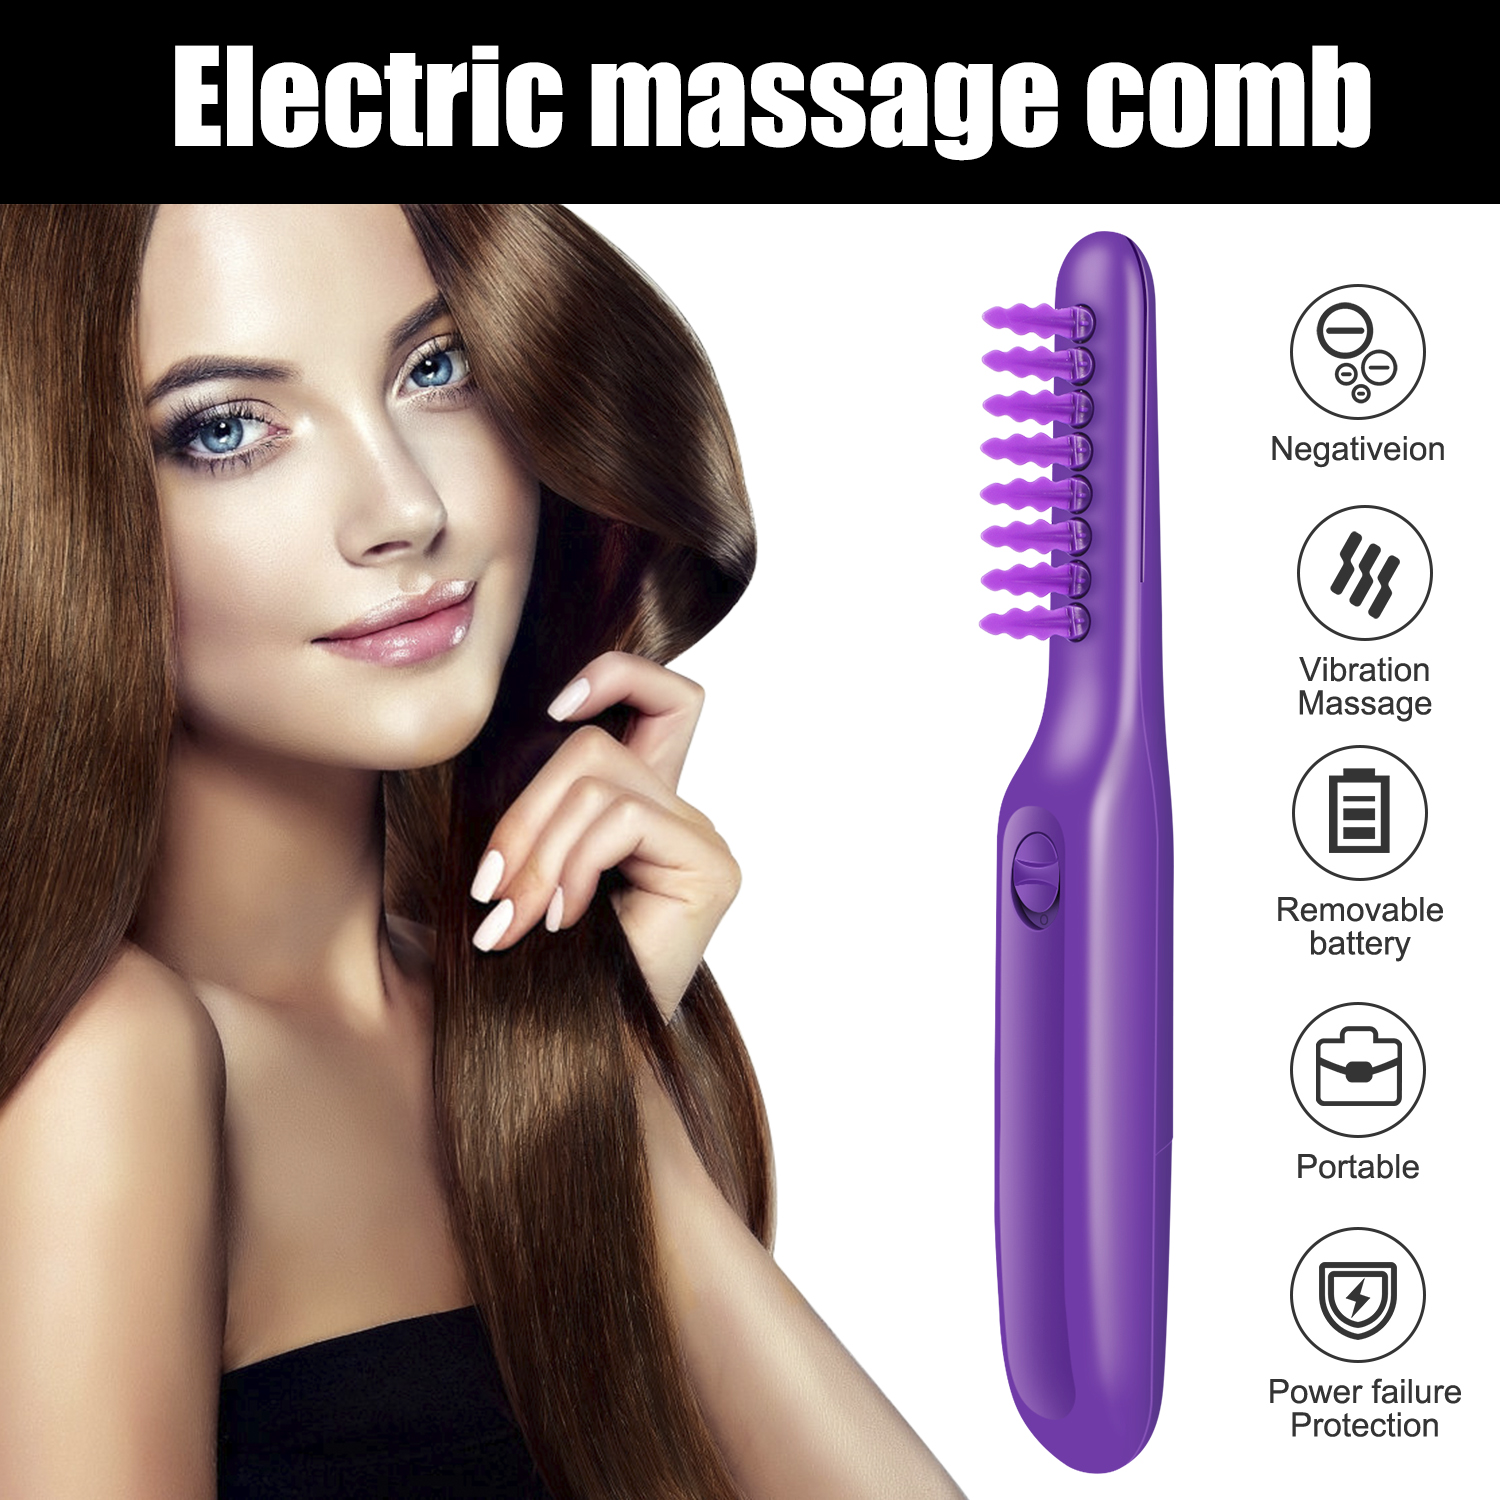 Electric Comb Women Hair Wet Or Dry Tame The Mane Electric Detangling Brush With Brush Cover, Adults & Kids